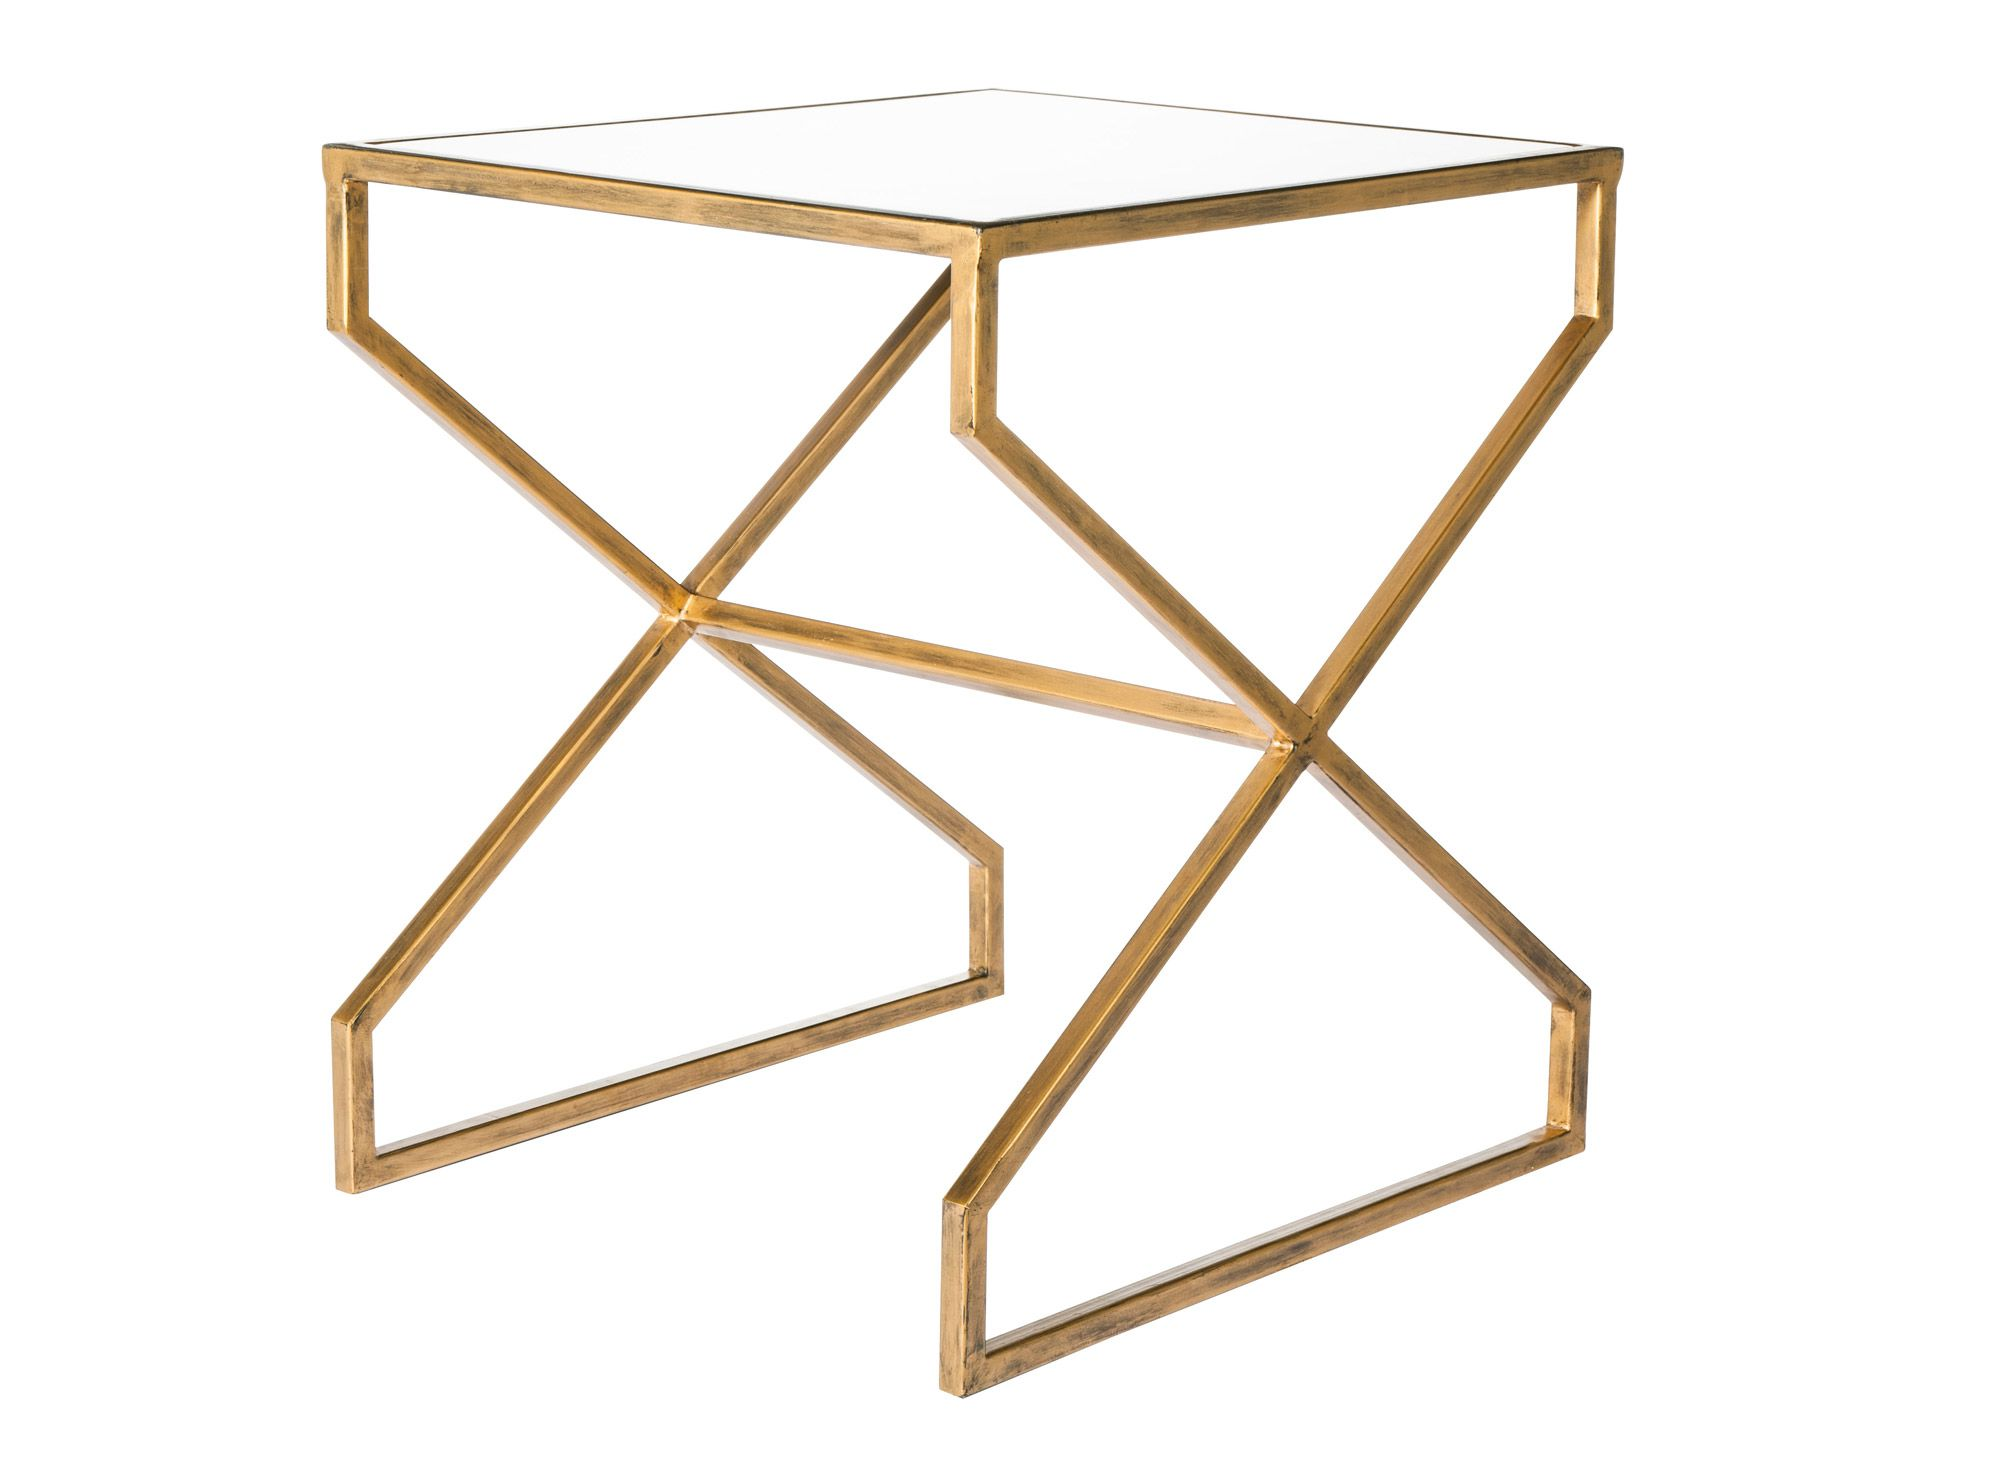 exclusive sneak peek nate berkus spring summer hbx target base accent table collection for square coffee toronto high end designer lamps gold metal young america furniture simple